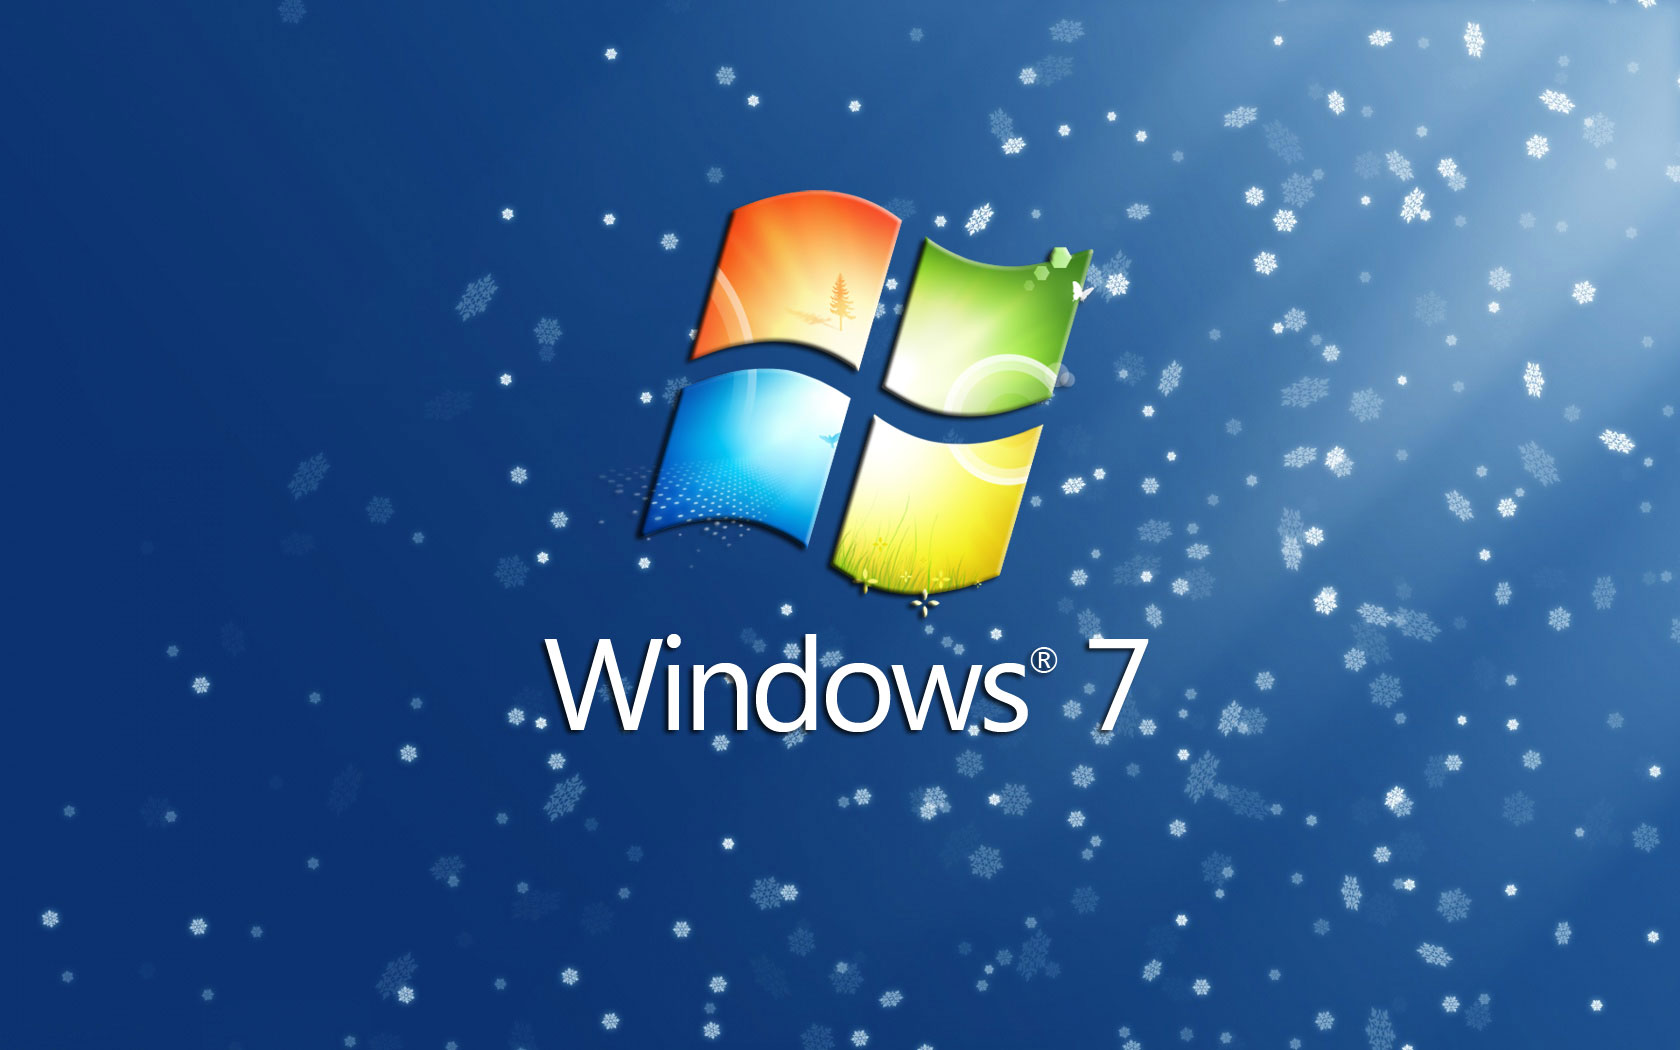 Windows 7 Christmas Background Wallpaper Backgrounds 1680x1050